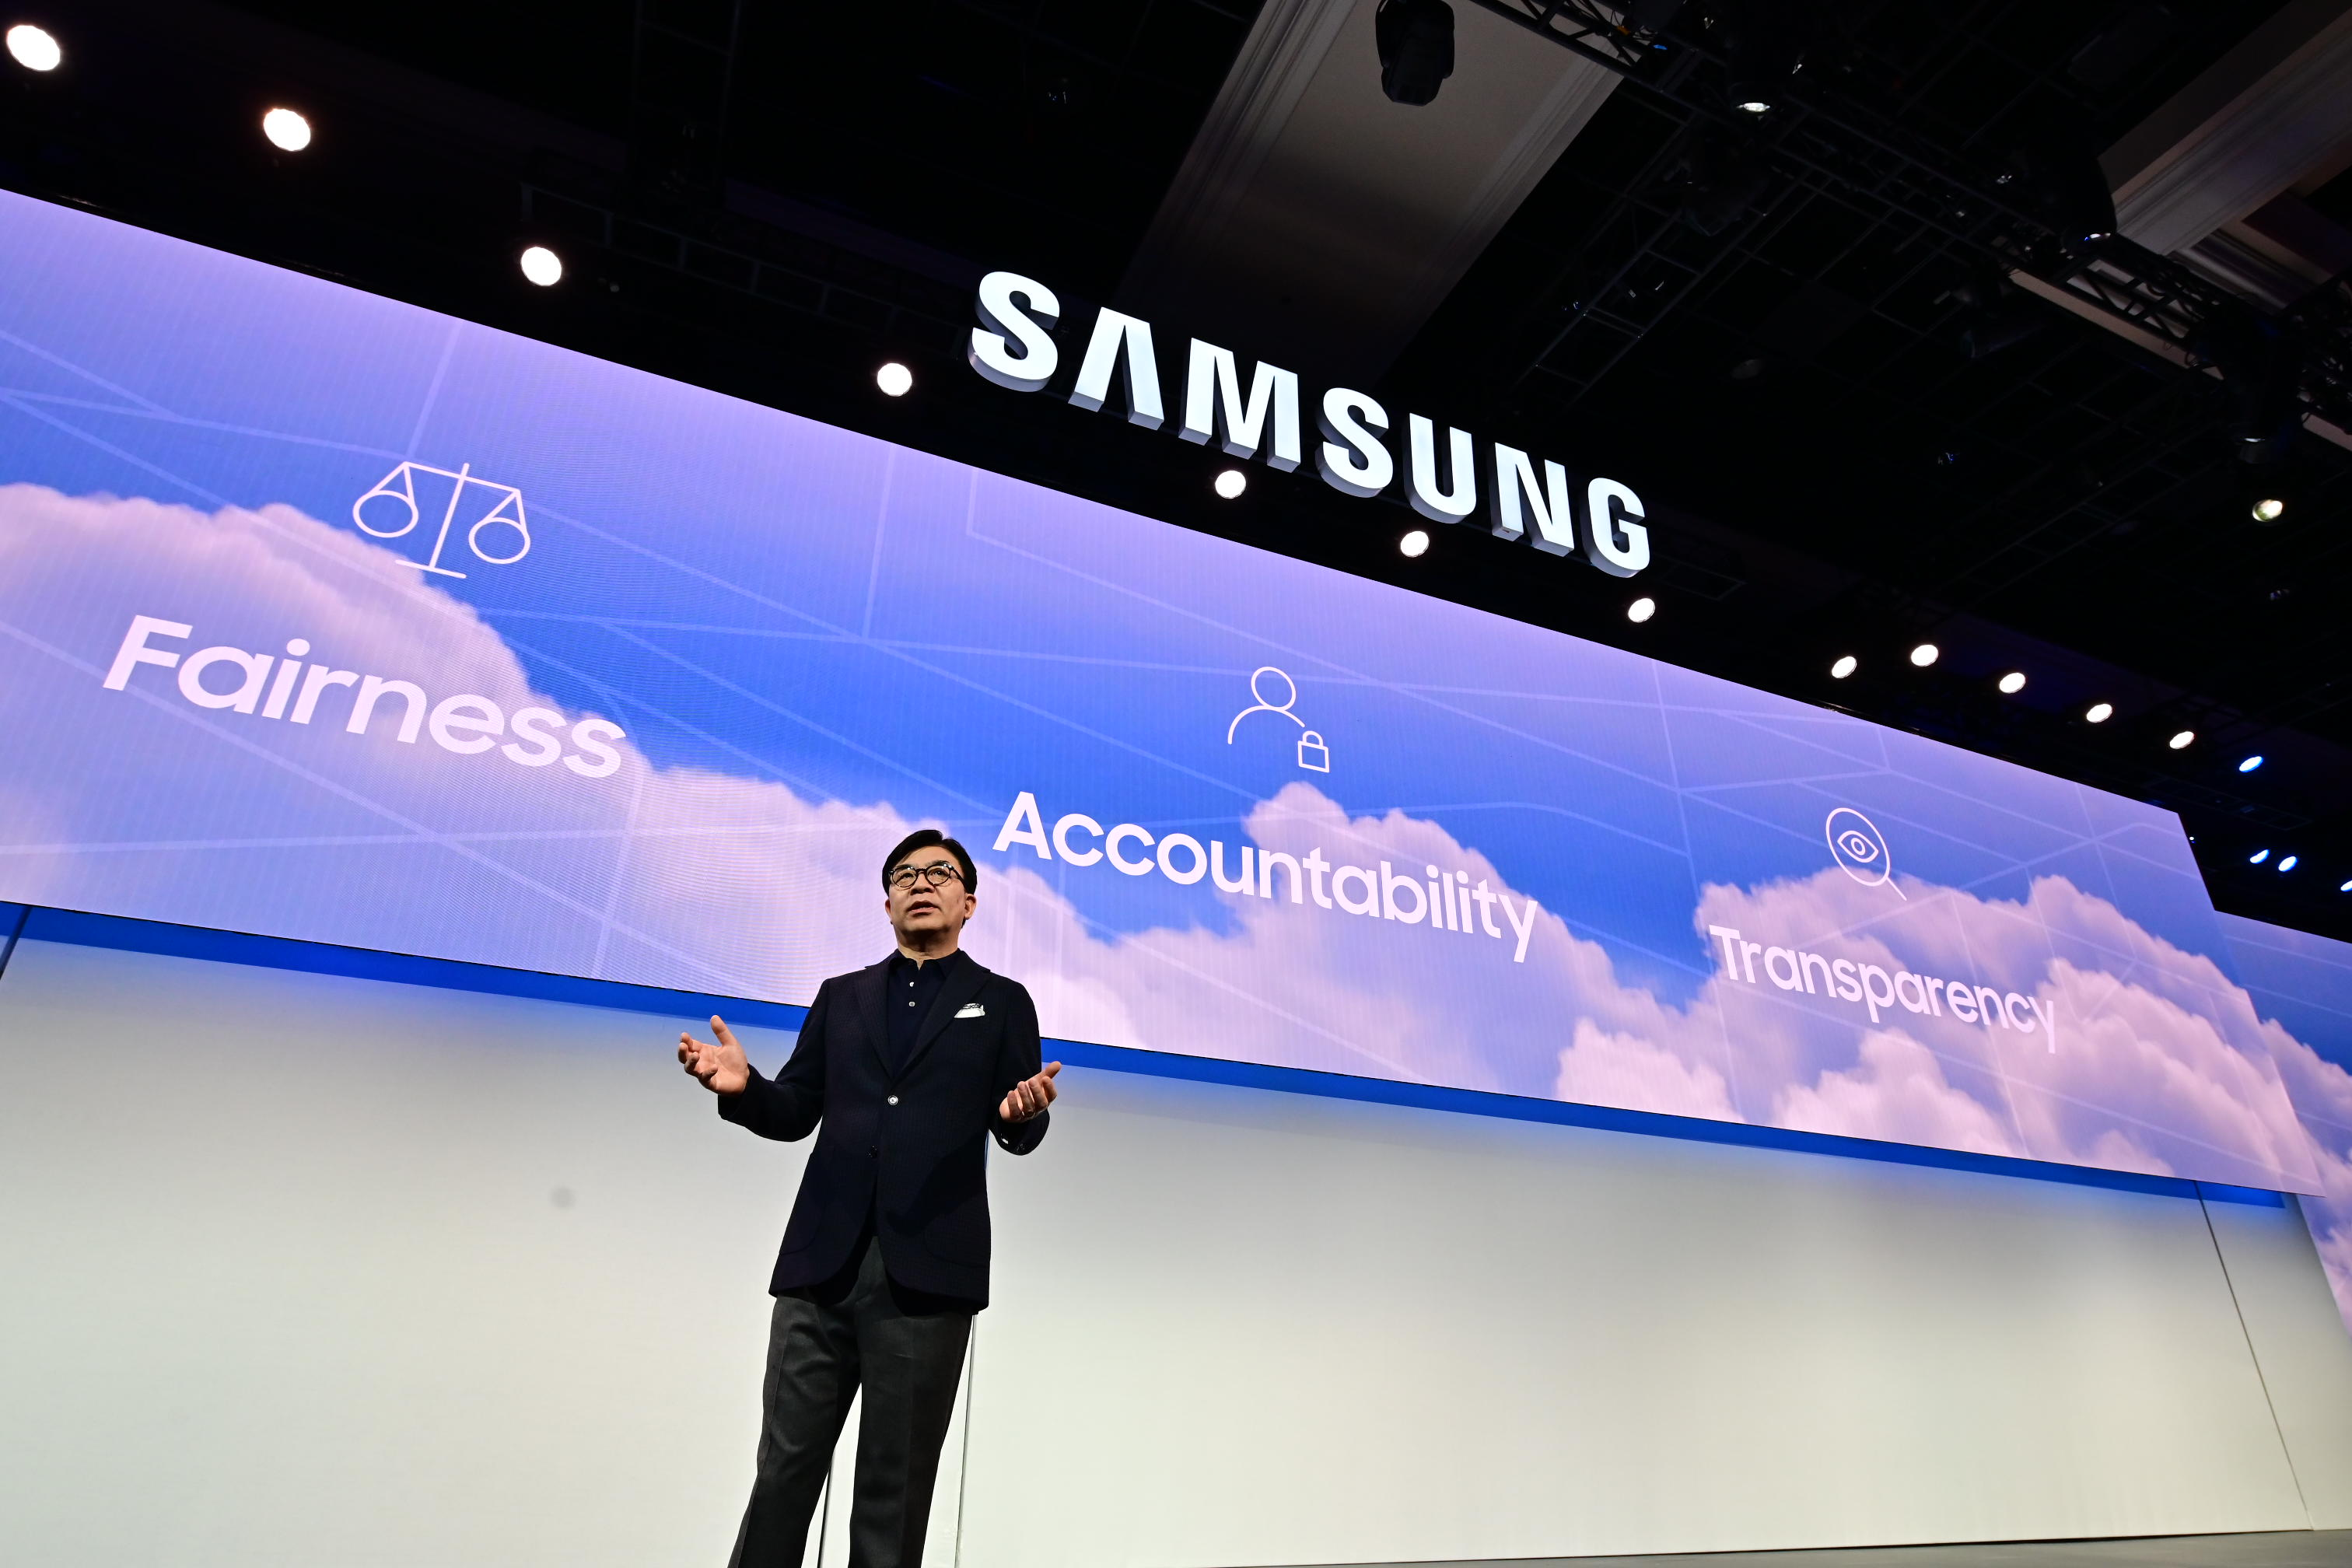 HS Kim President and CEO of Consumer Electronics Division Samsung Electronics at CES 2019 Samsung Press Conference